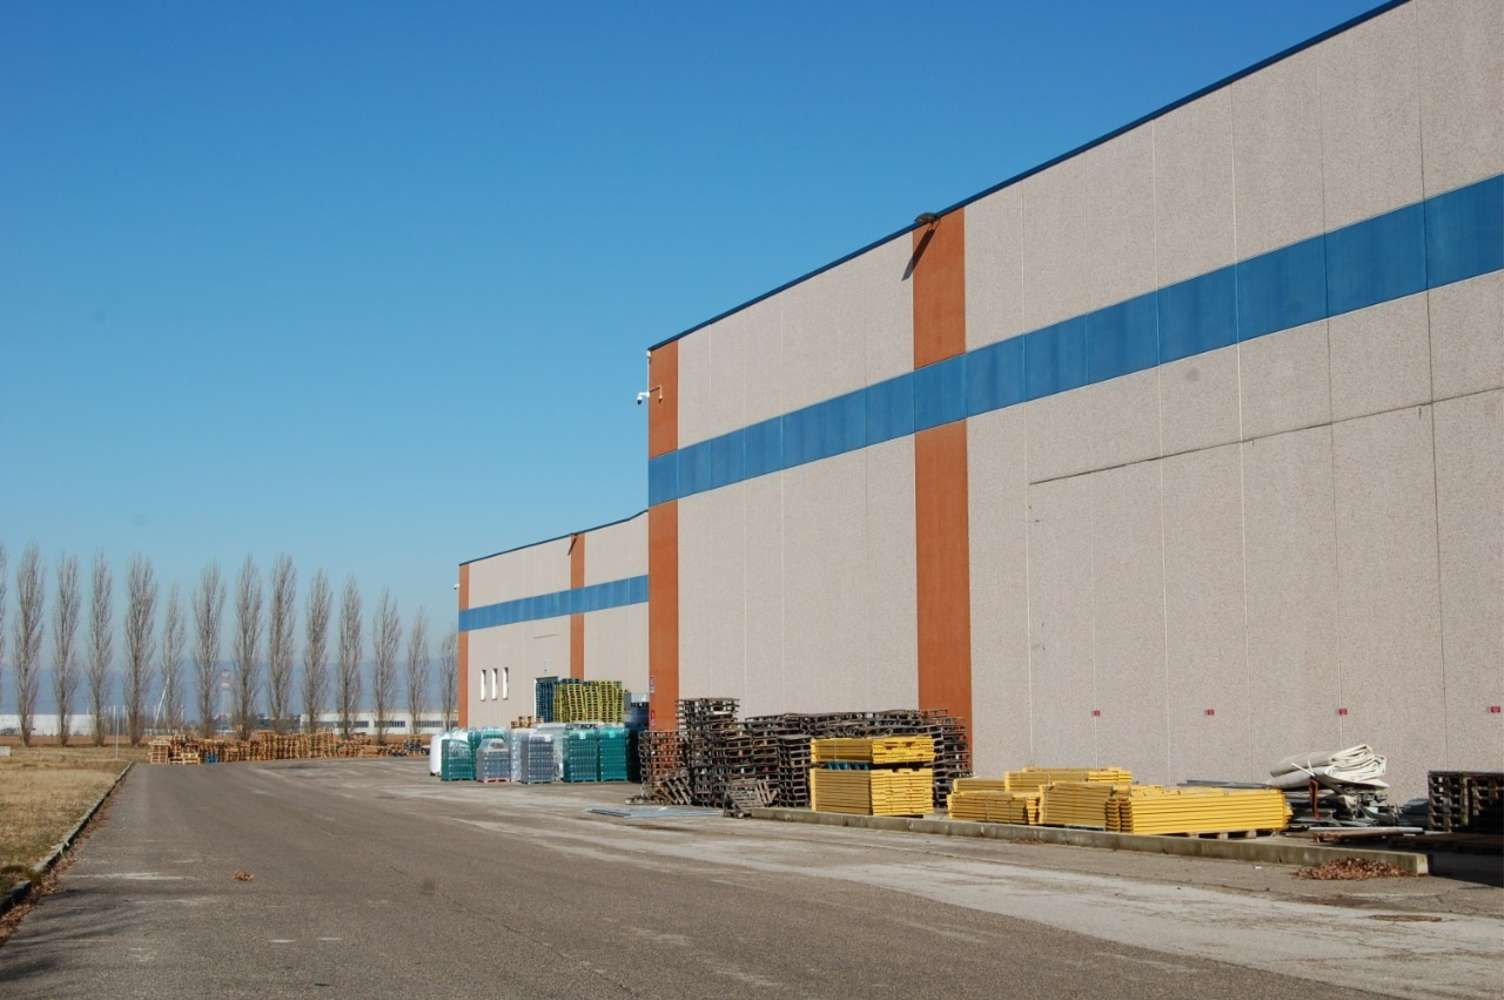 Magazzini industriali e logistici Oppeano, 37050 - Immobile logistico - Vallese di Oppeano